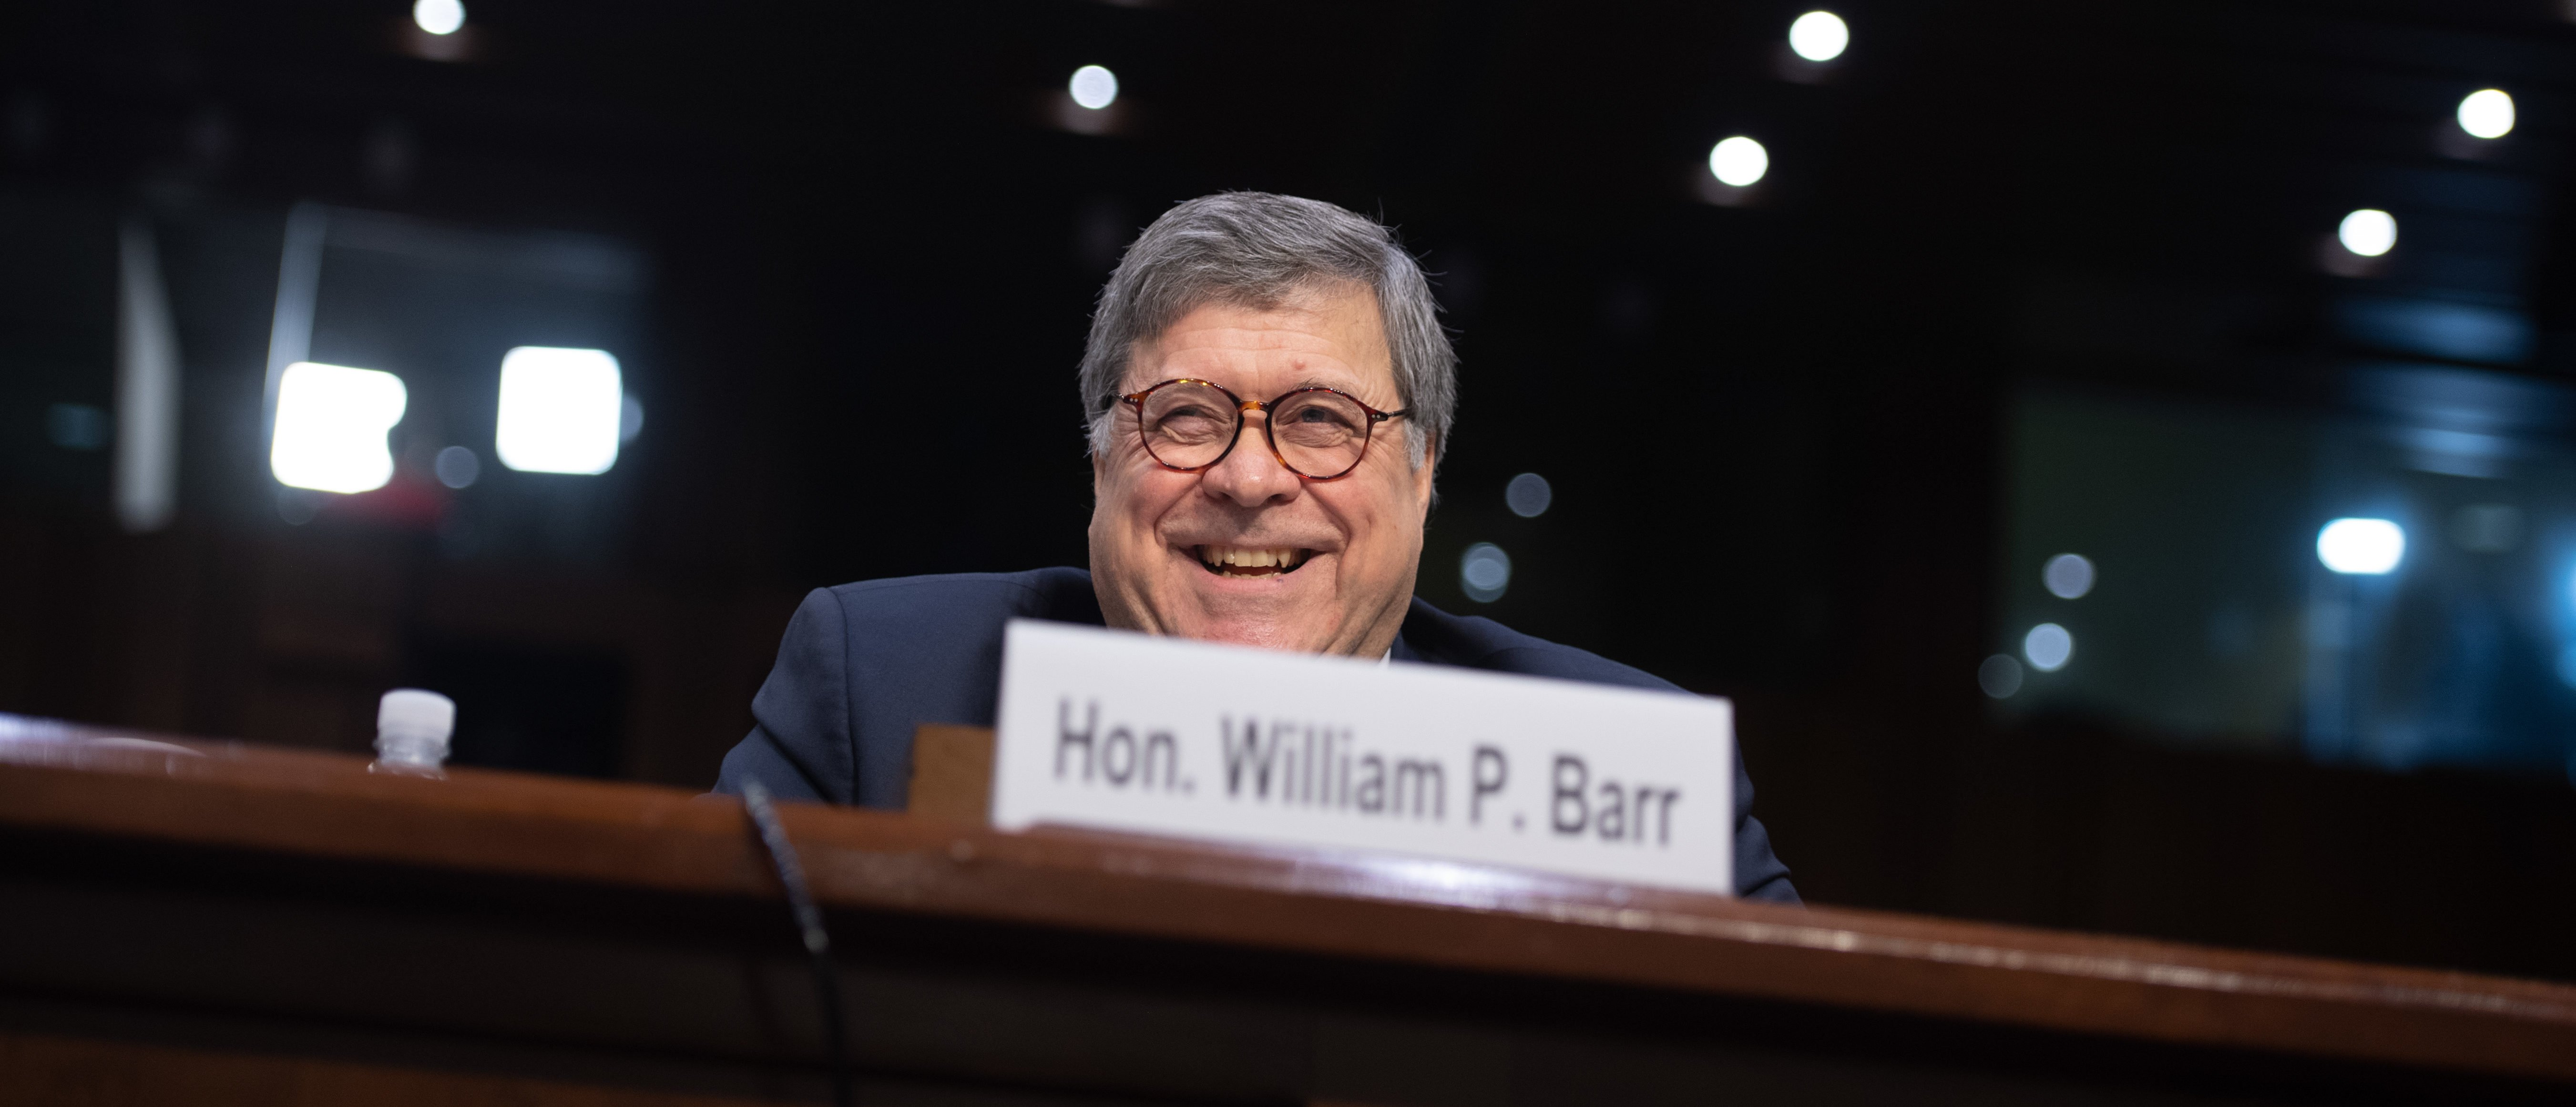 William Barr, nominee to be US Attorney General, testifies during a Senate Judiciary Committee confirmation hearing on Capitol Hill in Washington, DC, January 15, 2019. (SAUL LOEB/AFP/Getty Images)